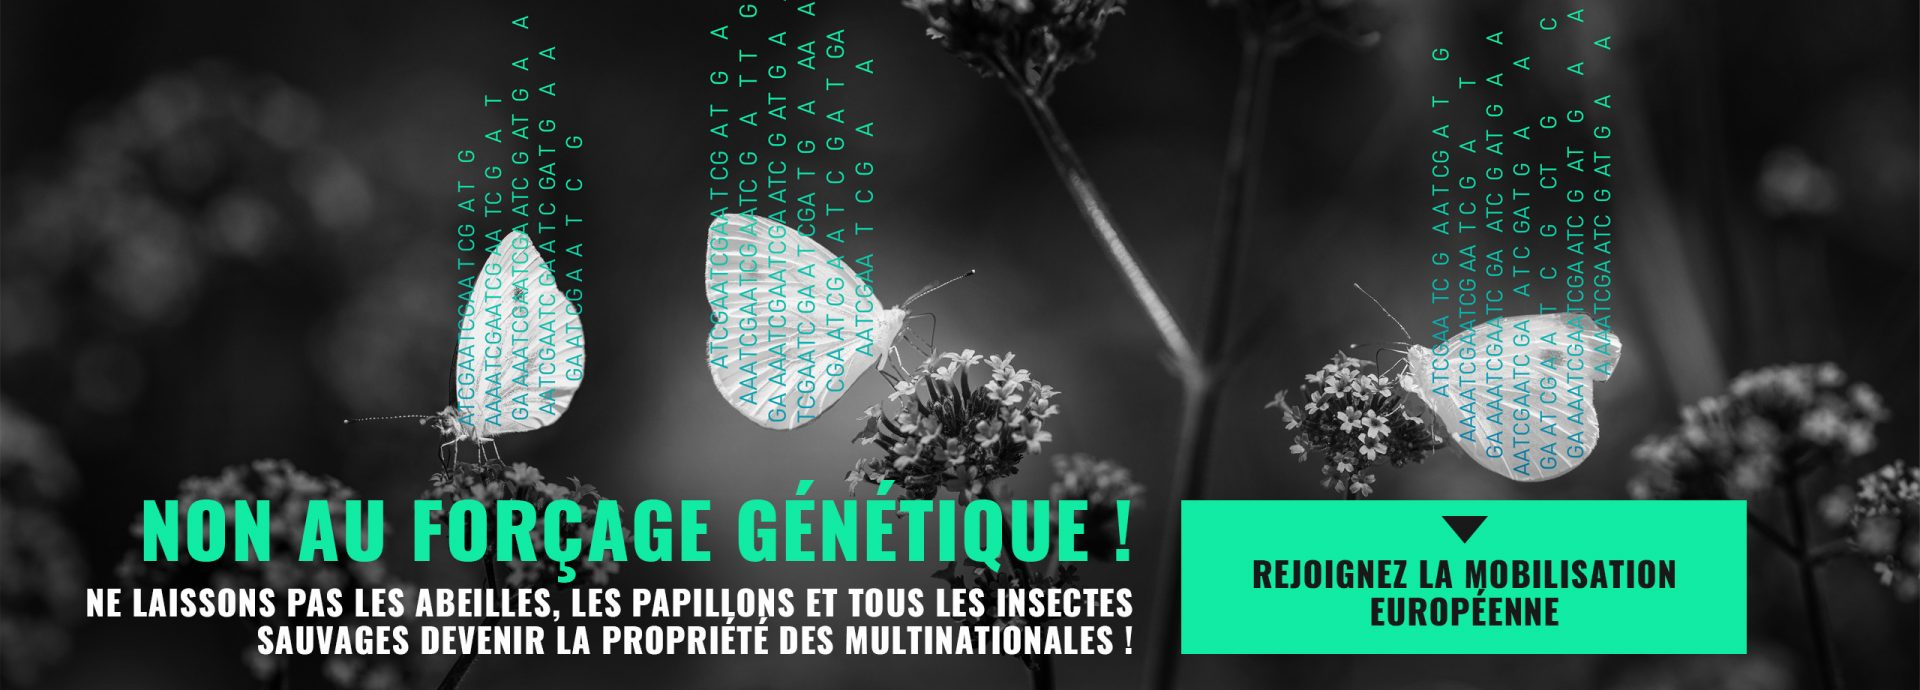 stop-forcage-genetique-petition-europe